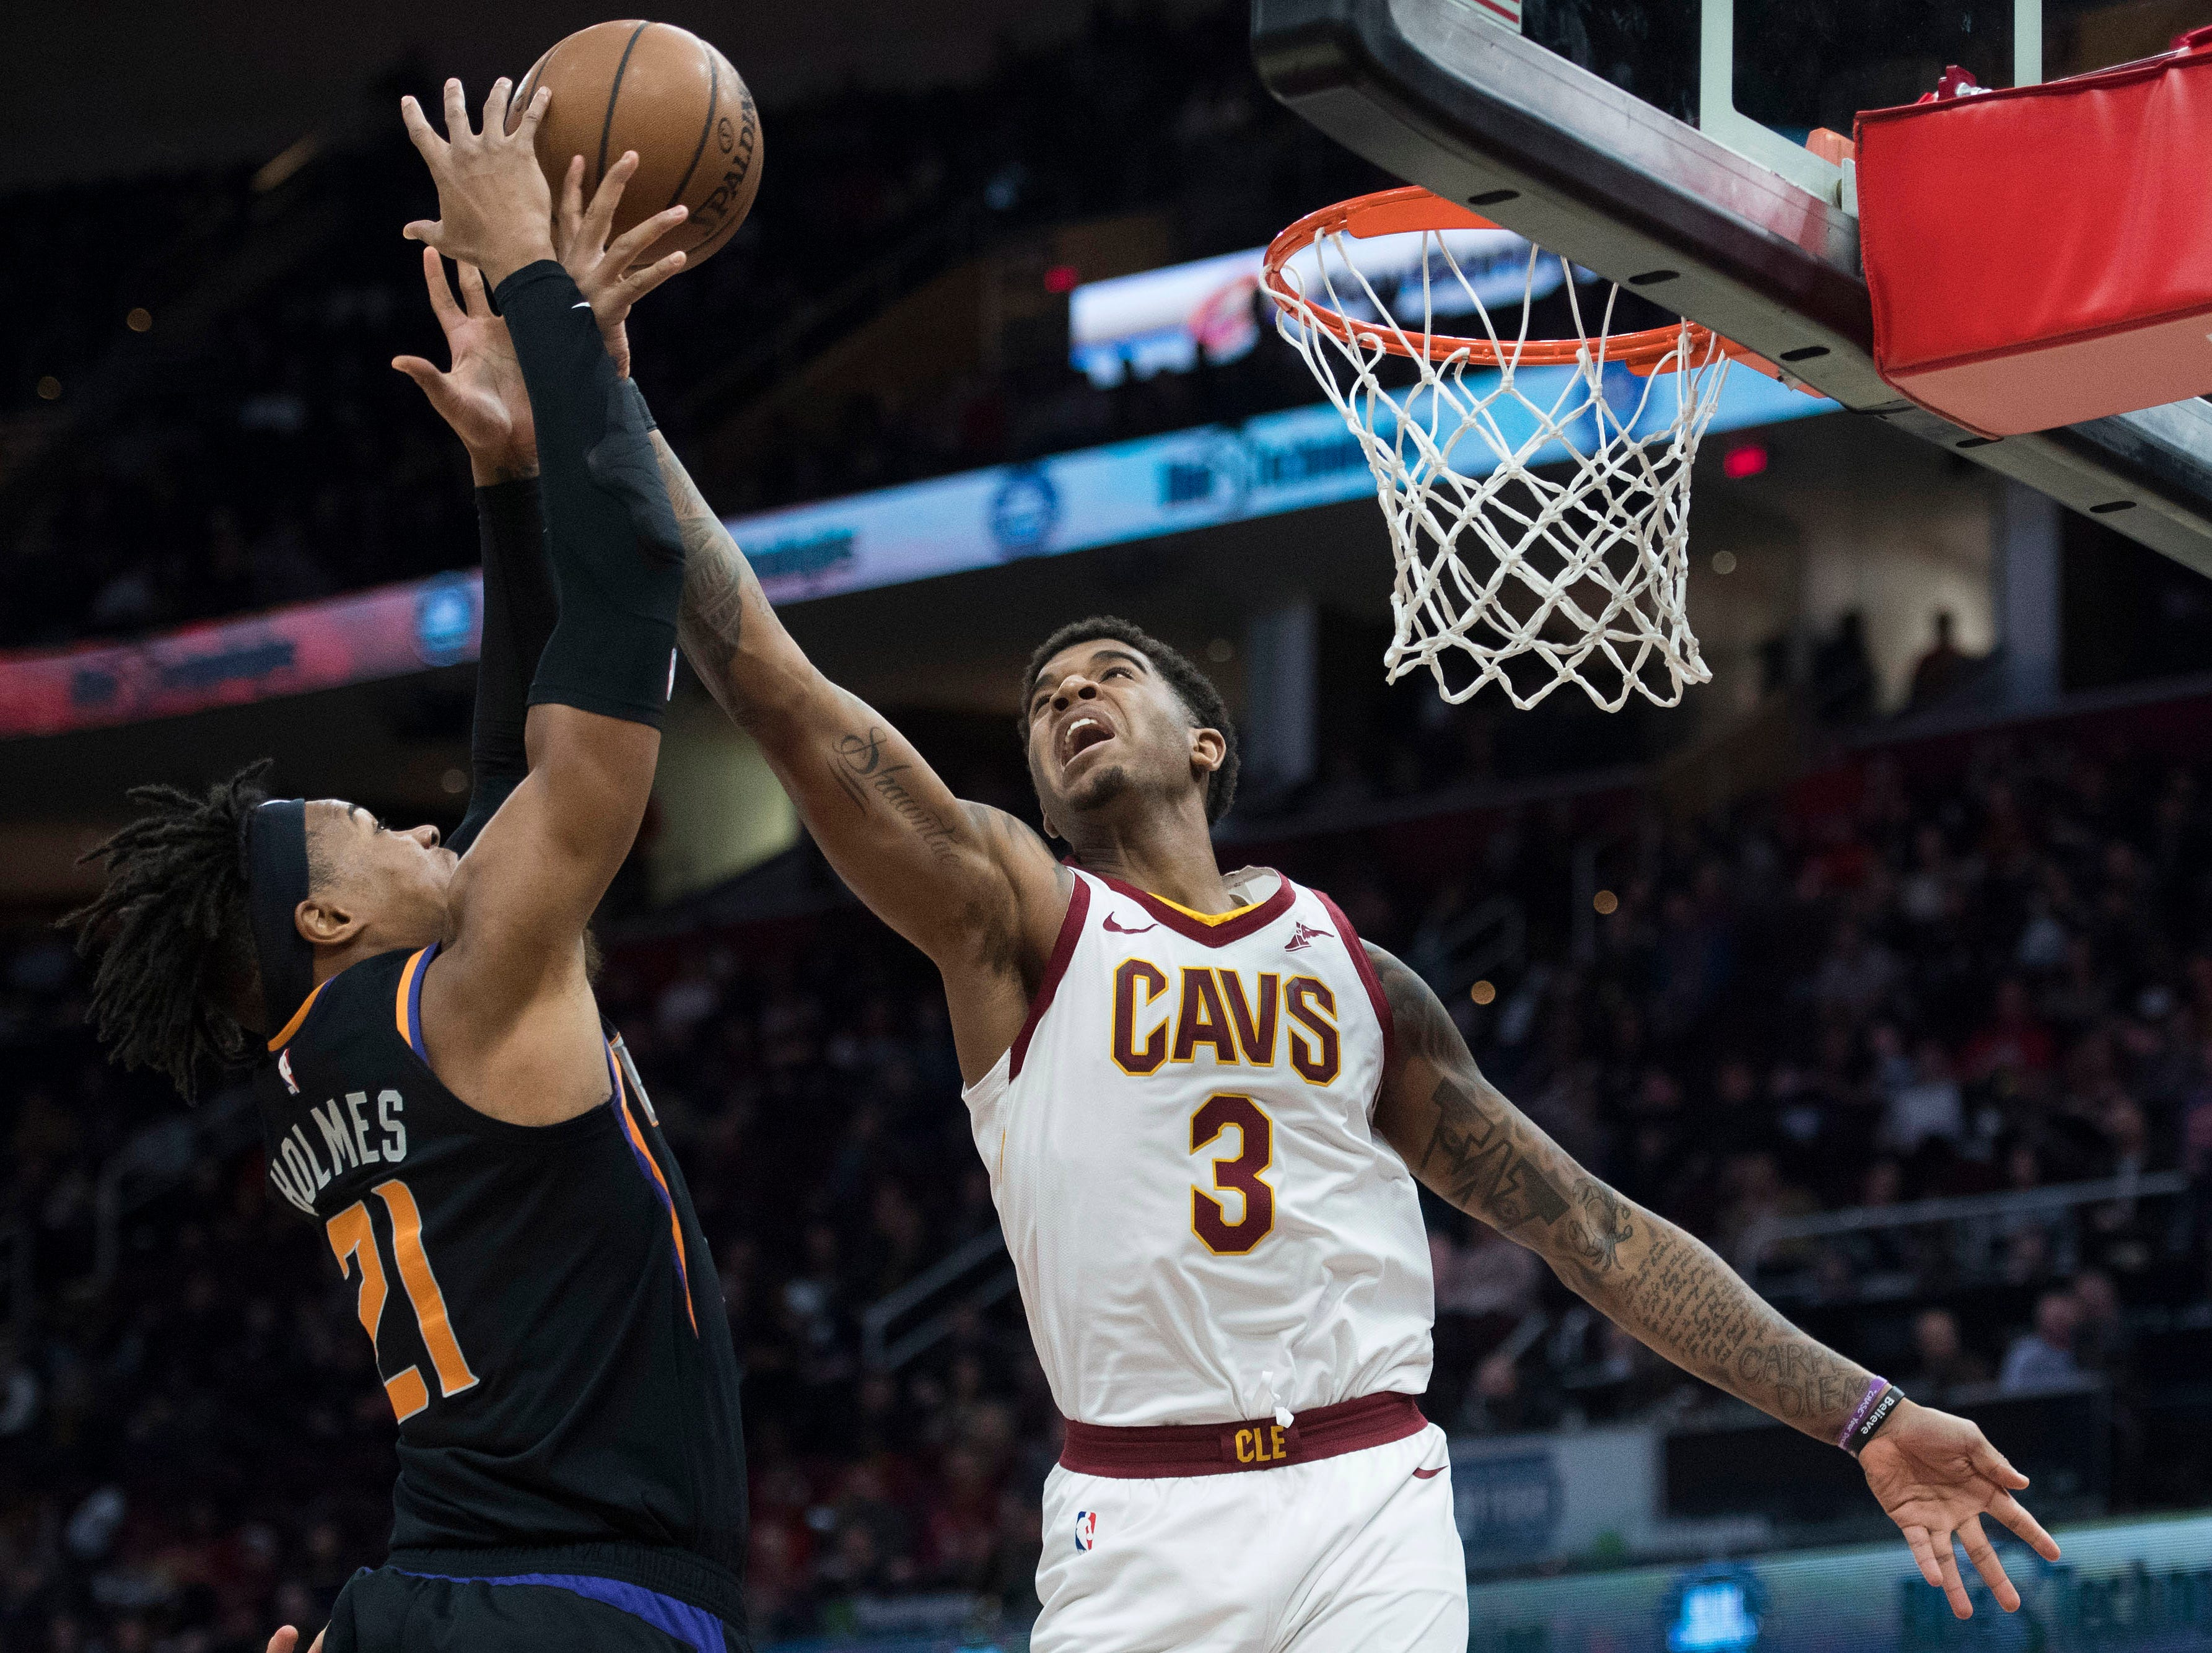 Feb 21, 2019; Cleveland, OH, USA; Phoenix Suns forward Richaun Holmes (21) and Cleveland Cavaliers forward Marquese Chriss (3) battle for a rebound during the second half at Quicken Loans Arena. Mandatory Credit: Ken Blaze-USA TODAY Sports